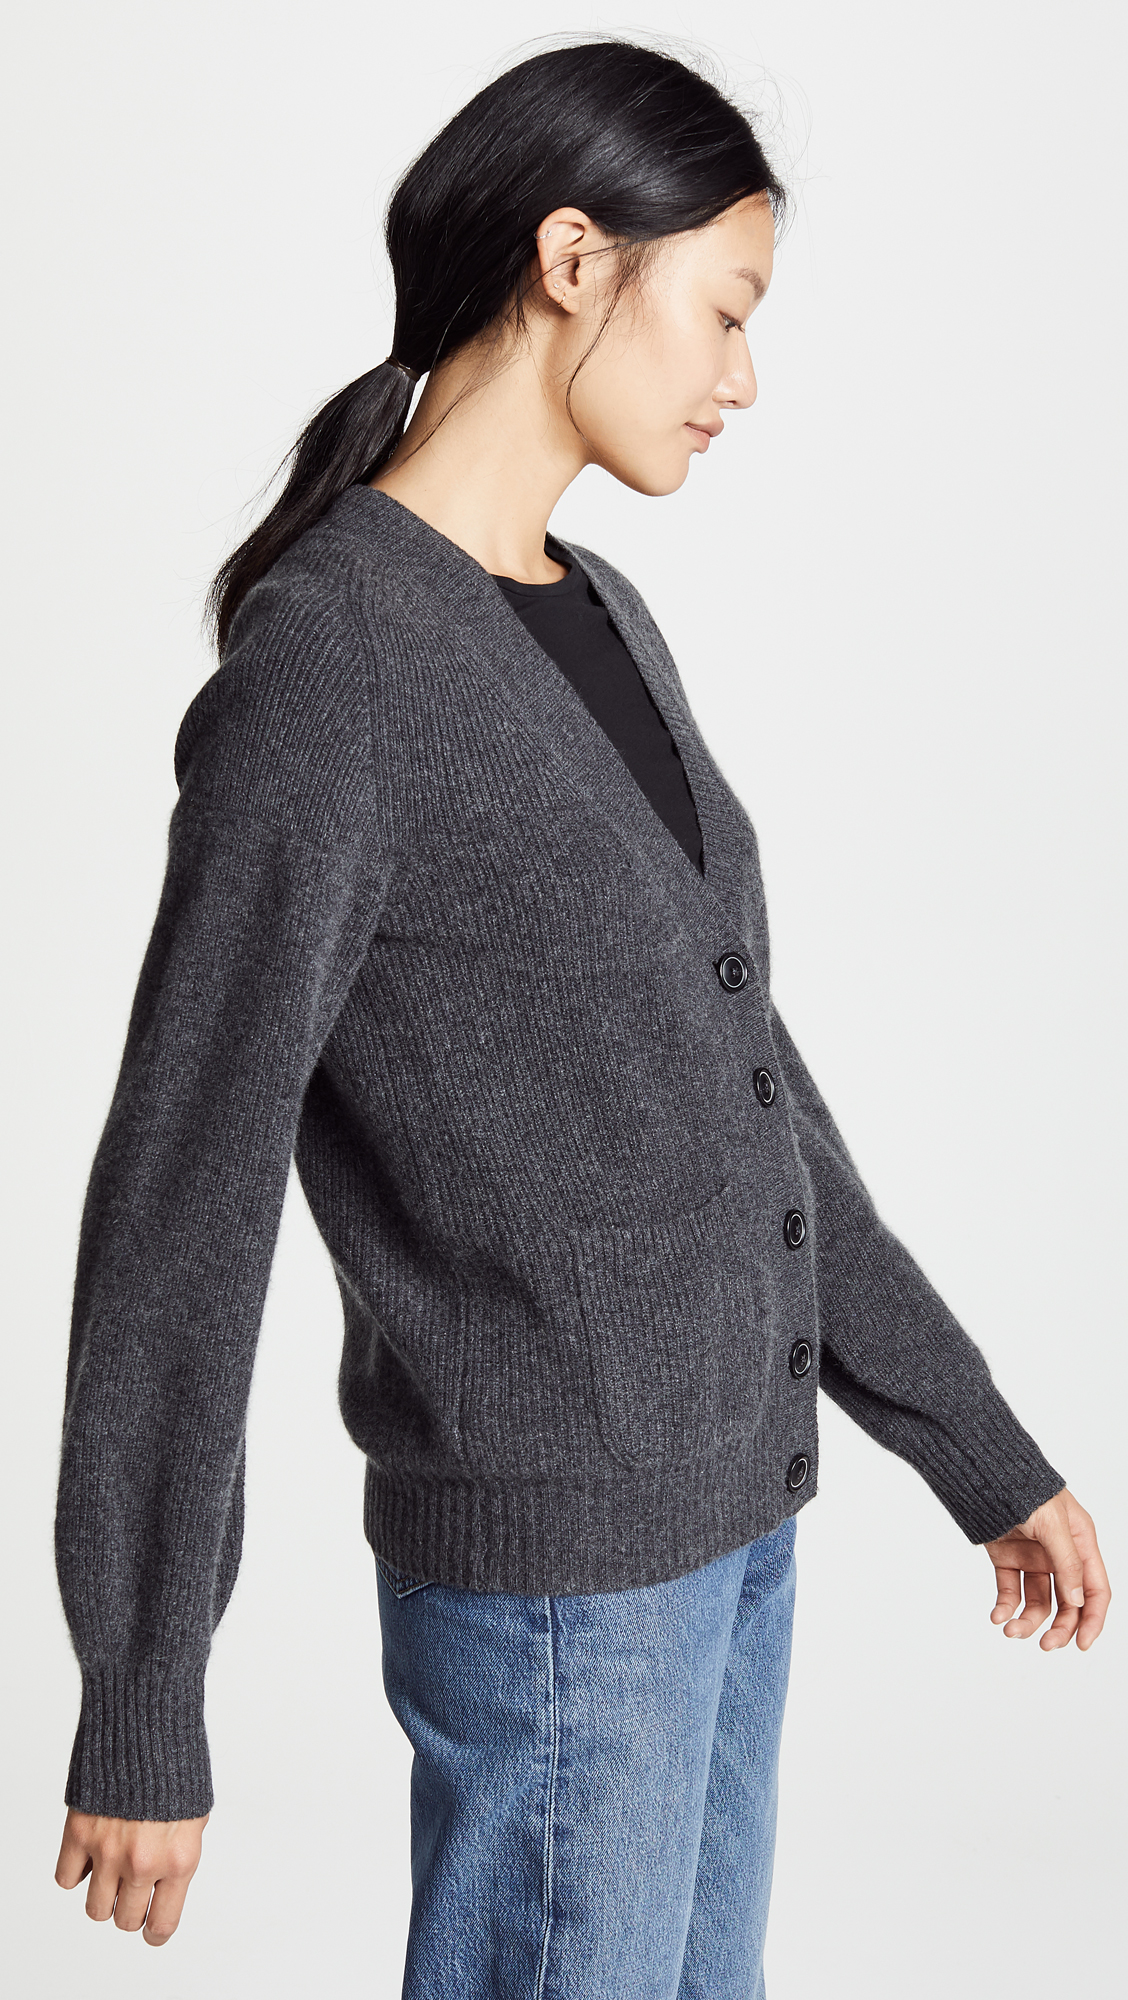 White + Warren Boyfriend Cashmere Cardigan